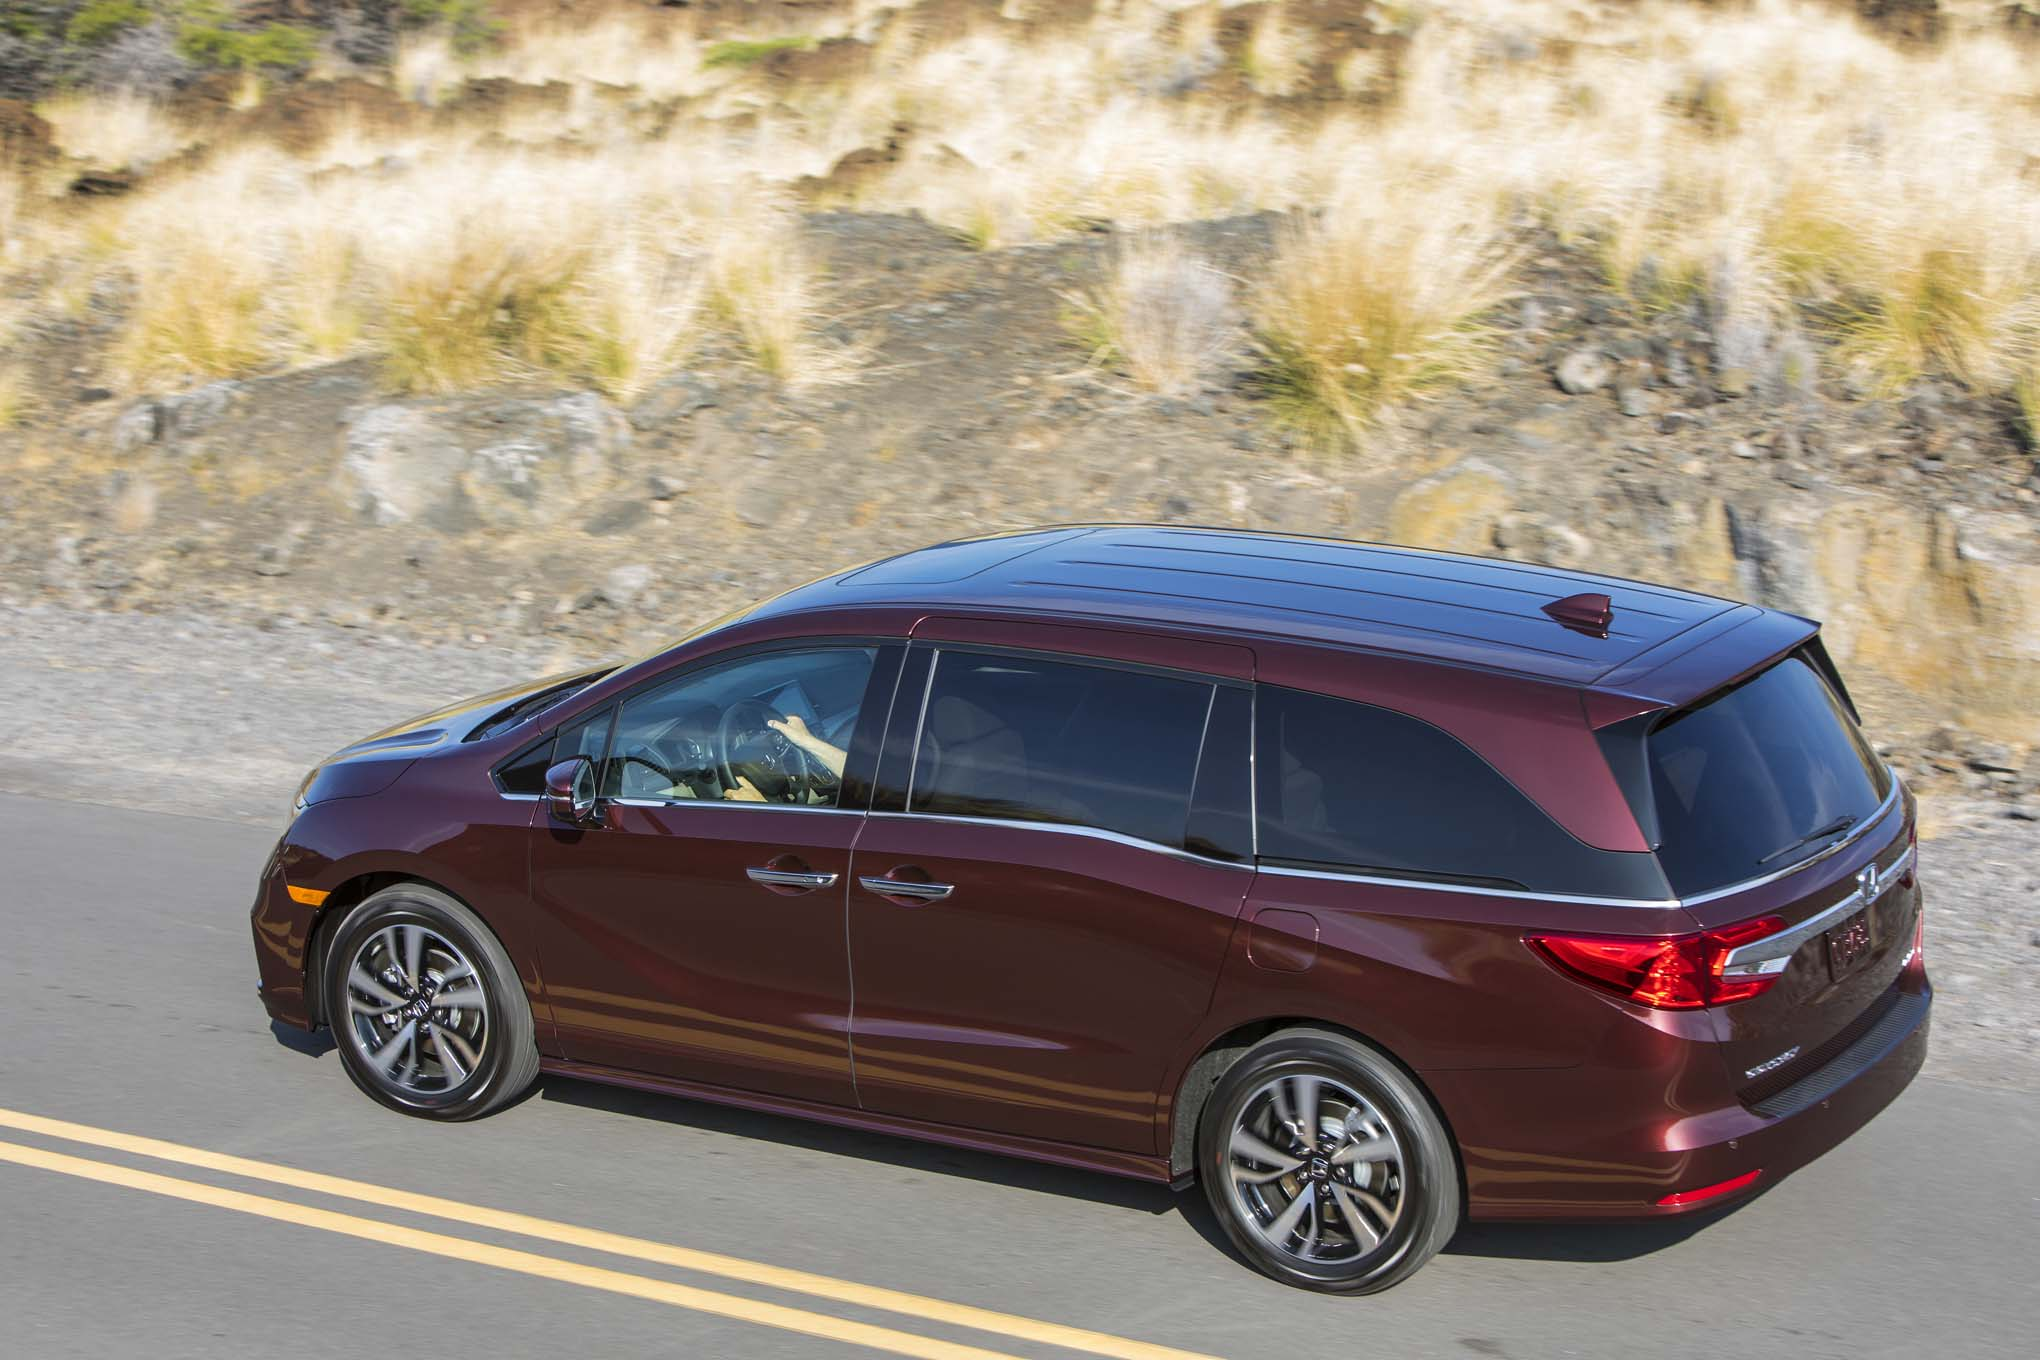 2018 Honda Odyssey Rear Three Quarter In Motion 12